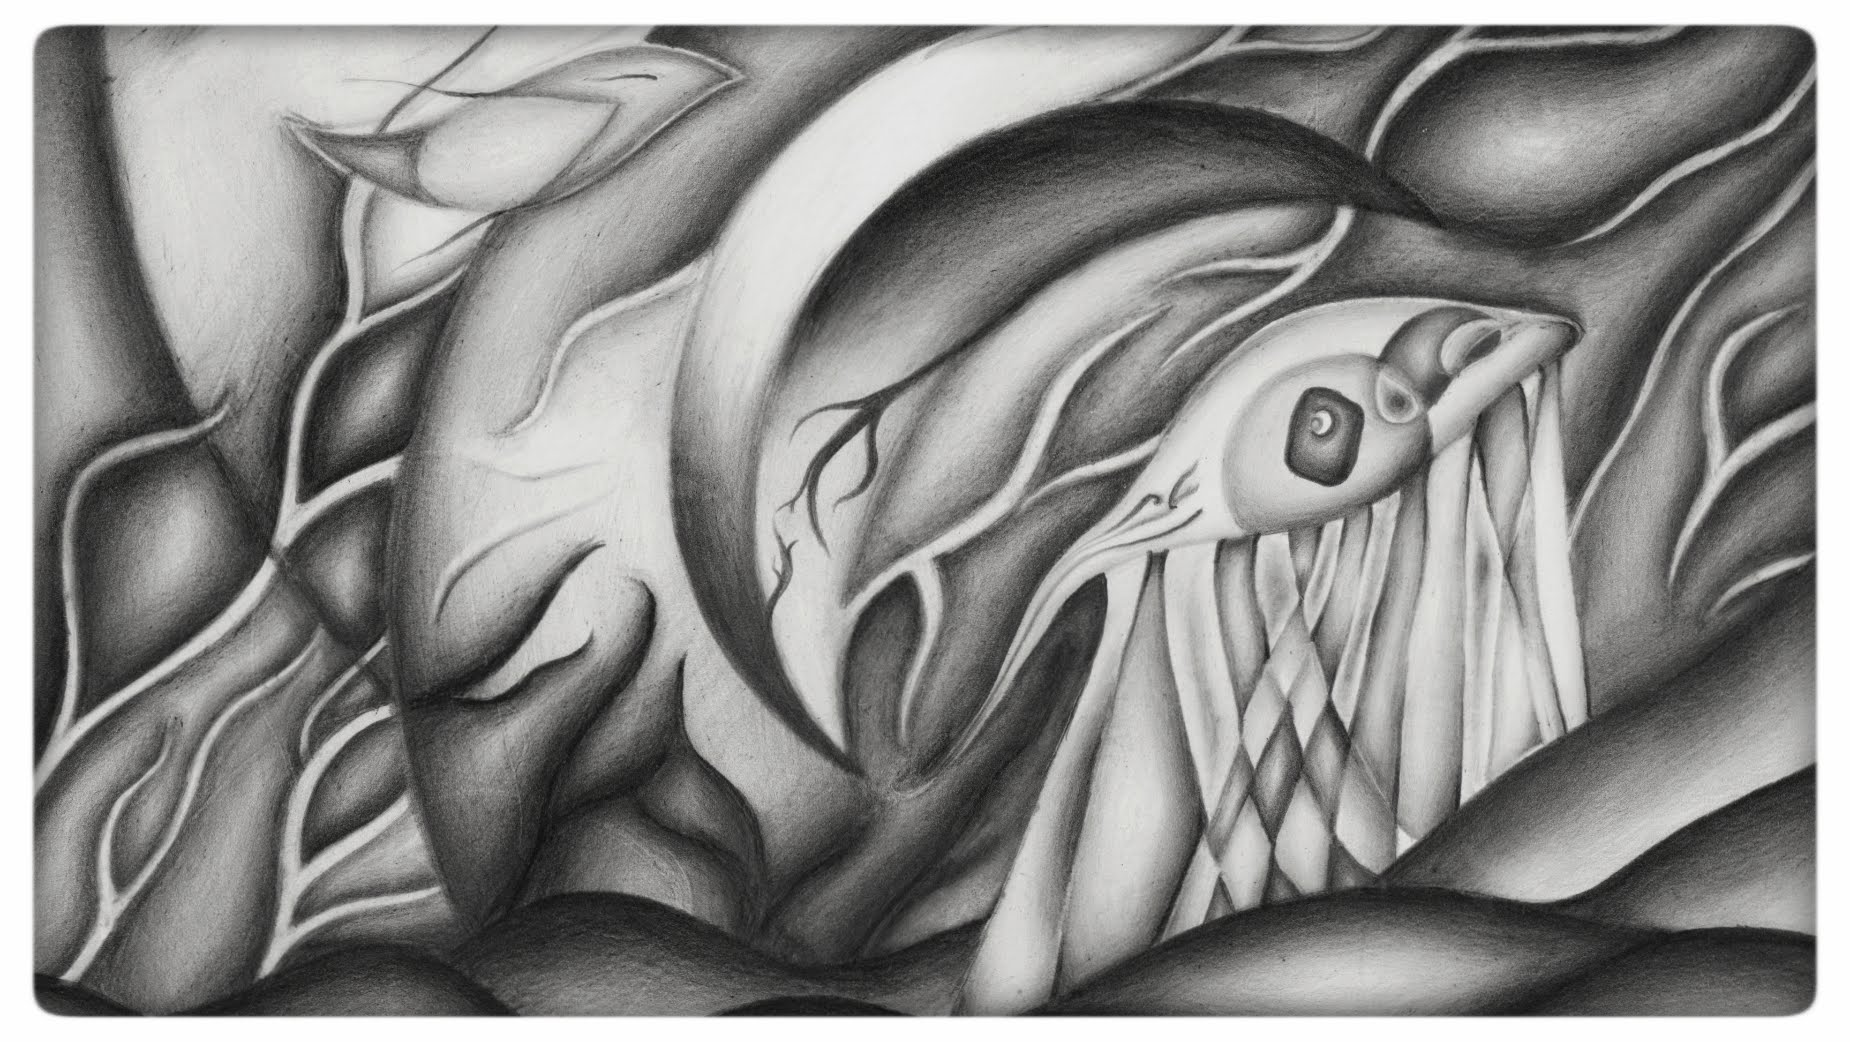 Wanderer - Abstract art, Graphite drawing [Timelapse] - YouTube